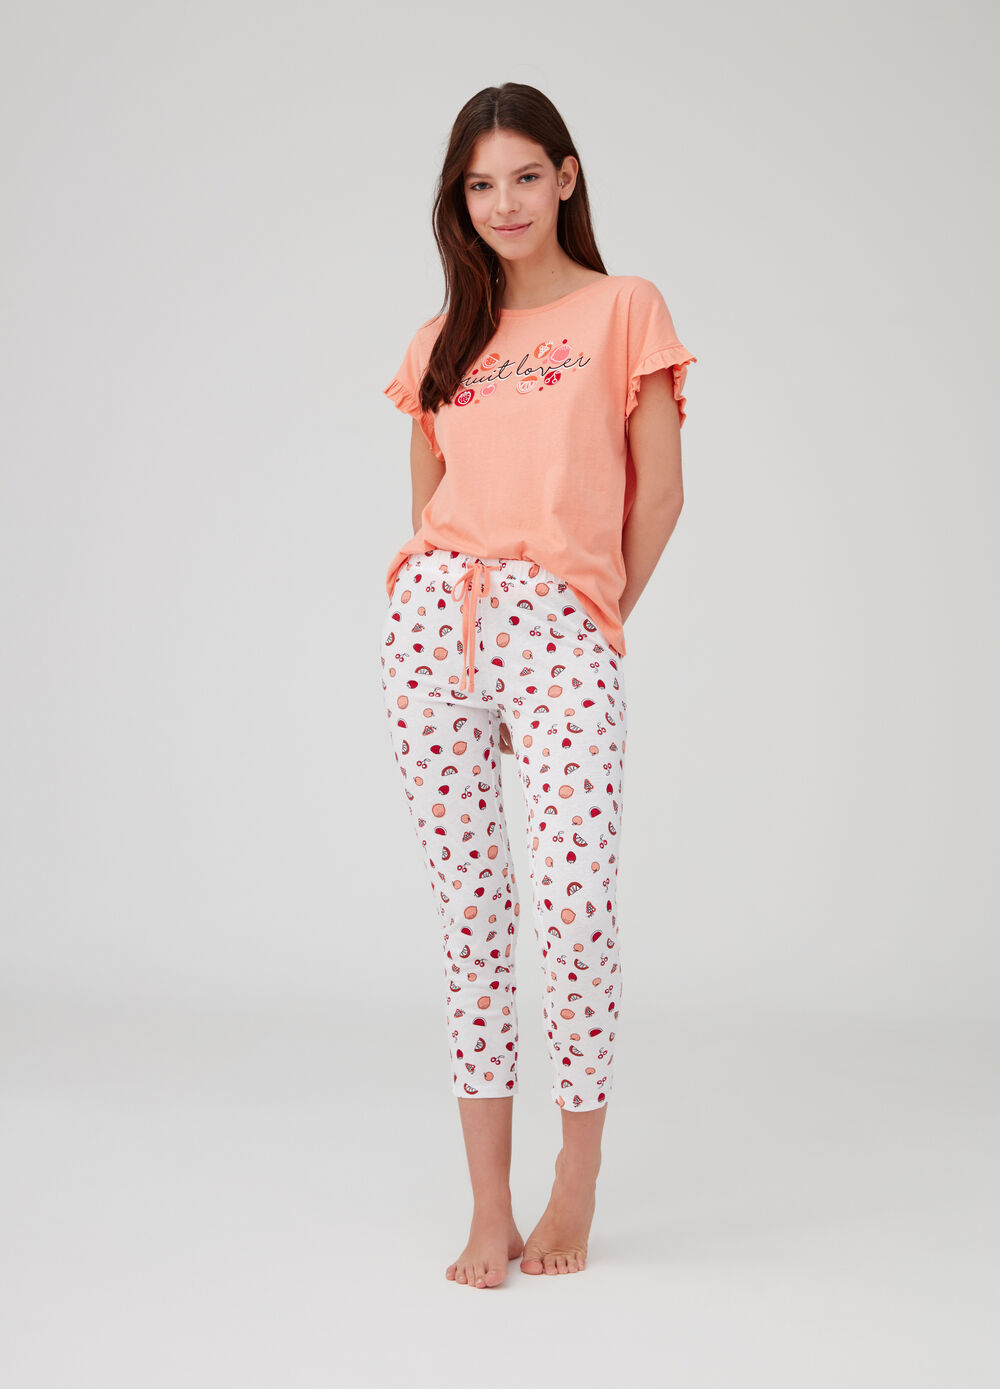 Pyjamas top and trousers with fruit print